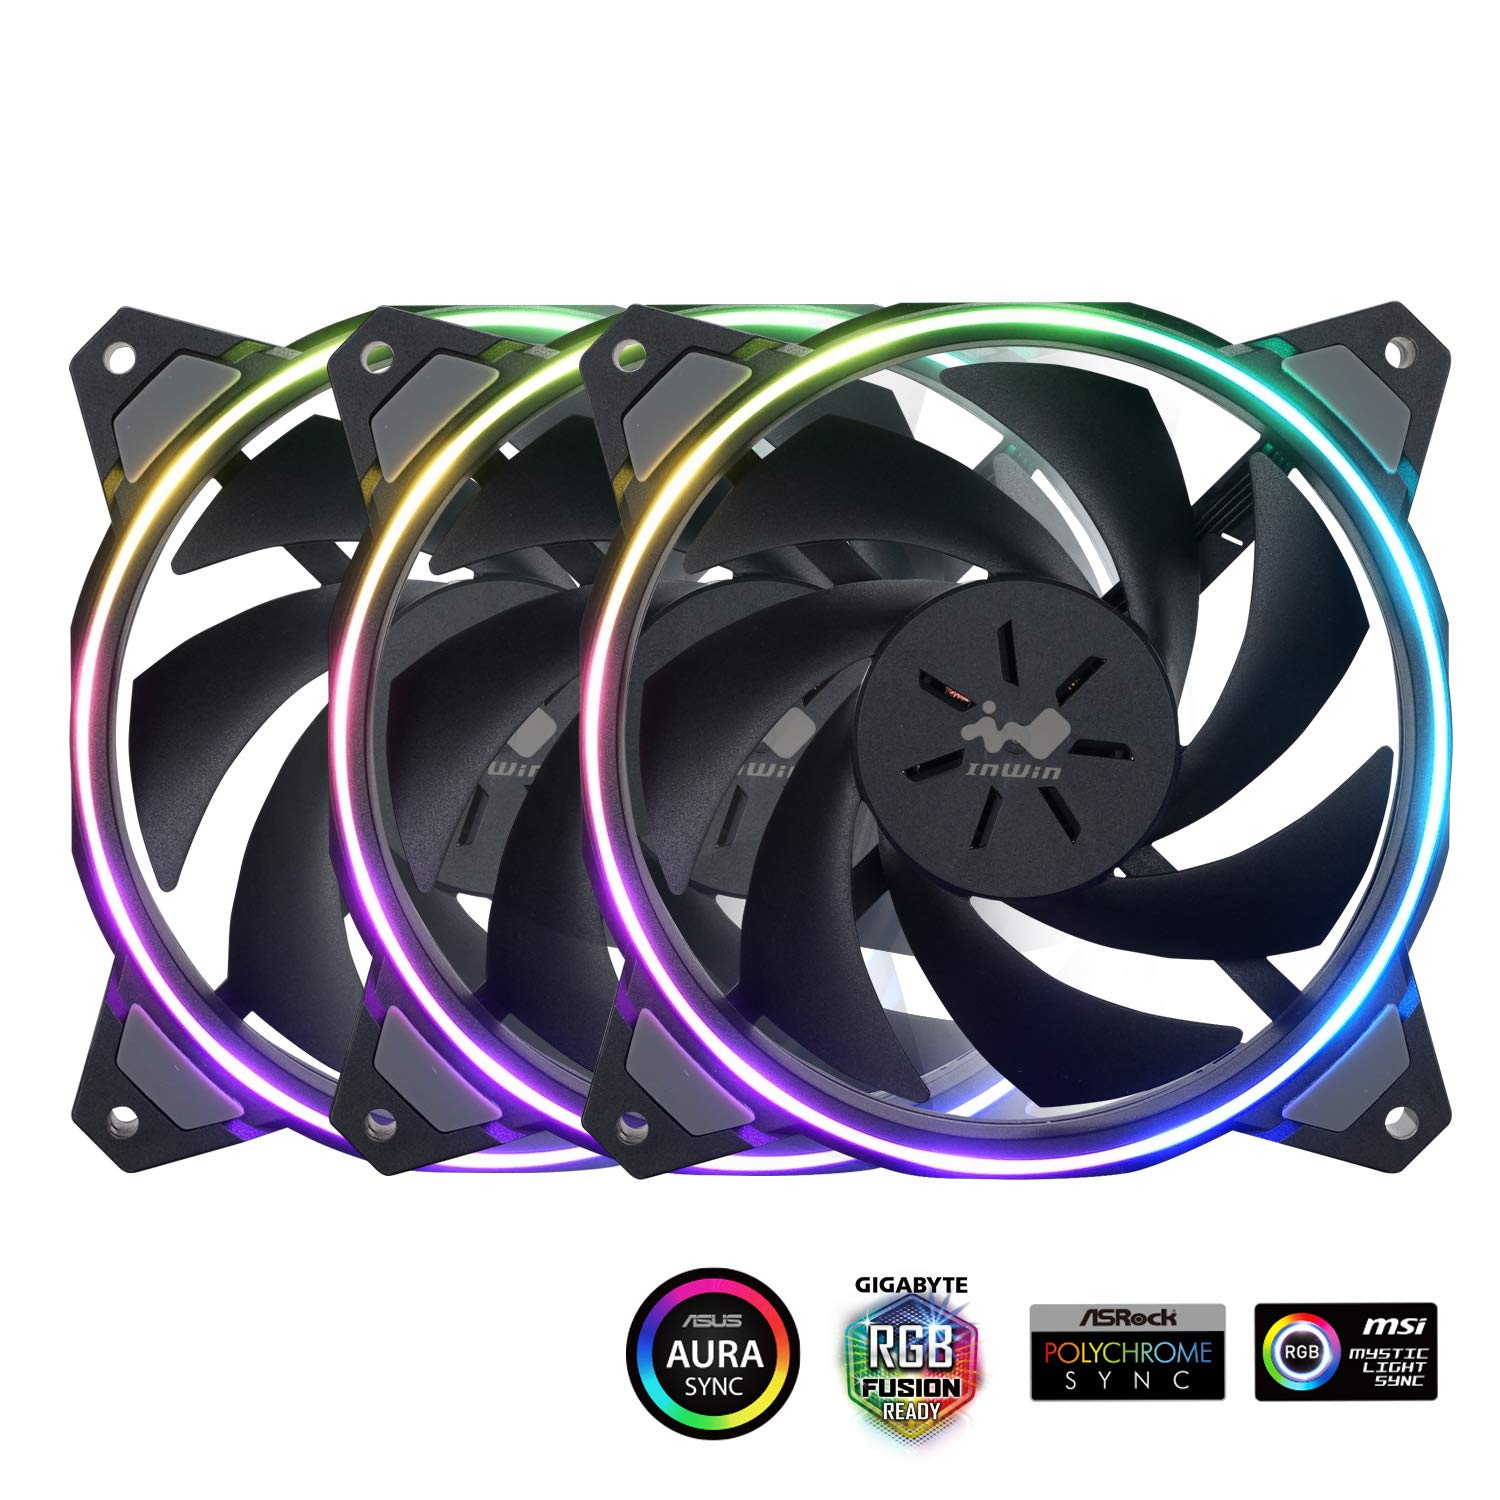 InWin Sirius Loop Addressable RGB Triple Fan Kit 120mm High Performance Cooling Computer Case Fan Cooling by IN WIN